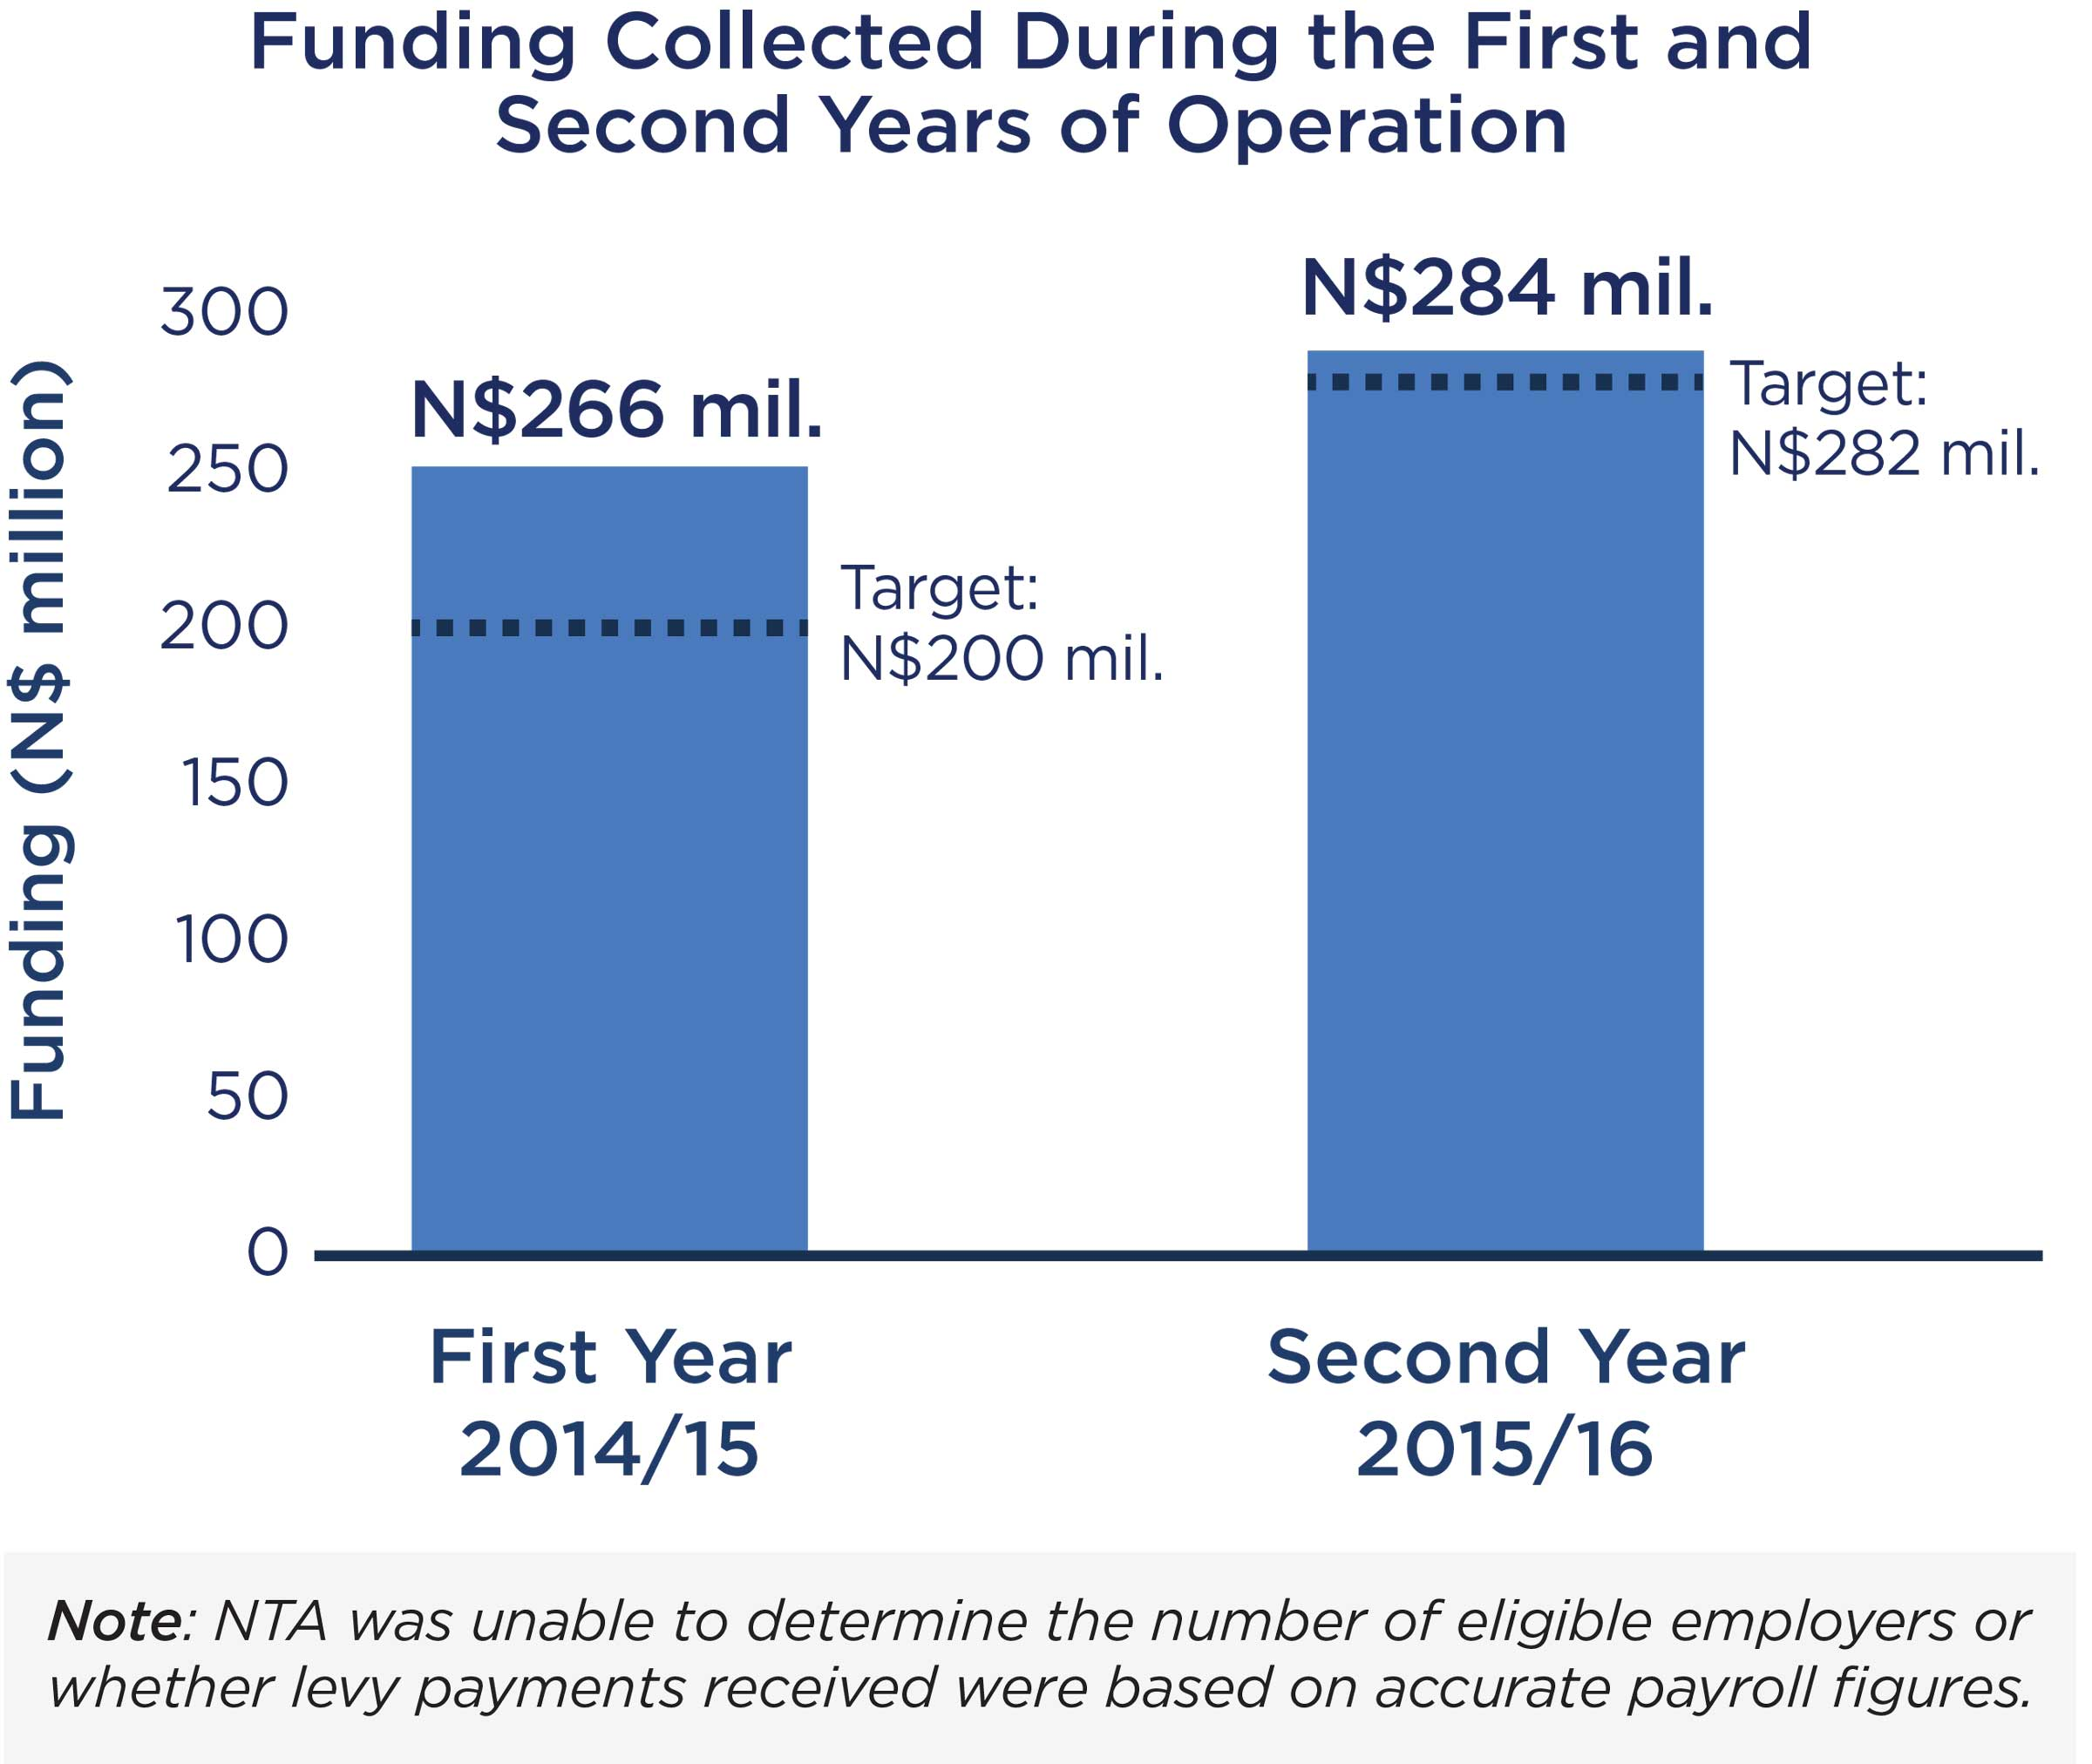 Funding Collected During the First and Second Years of NTF Operation